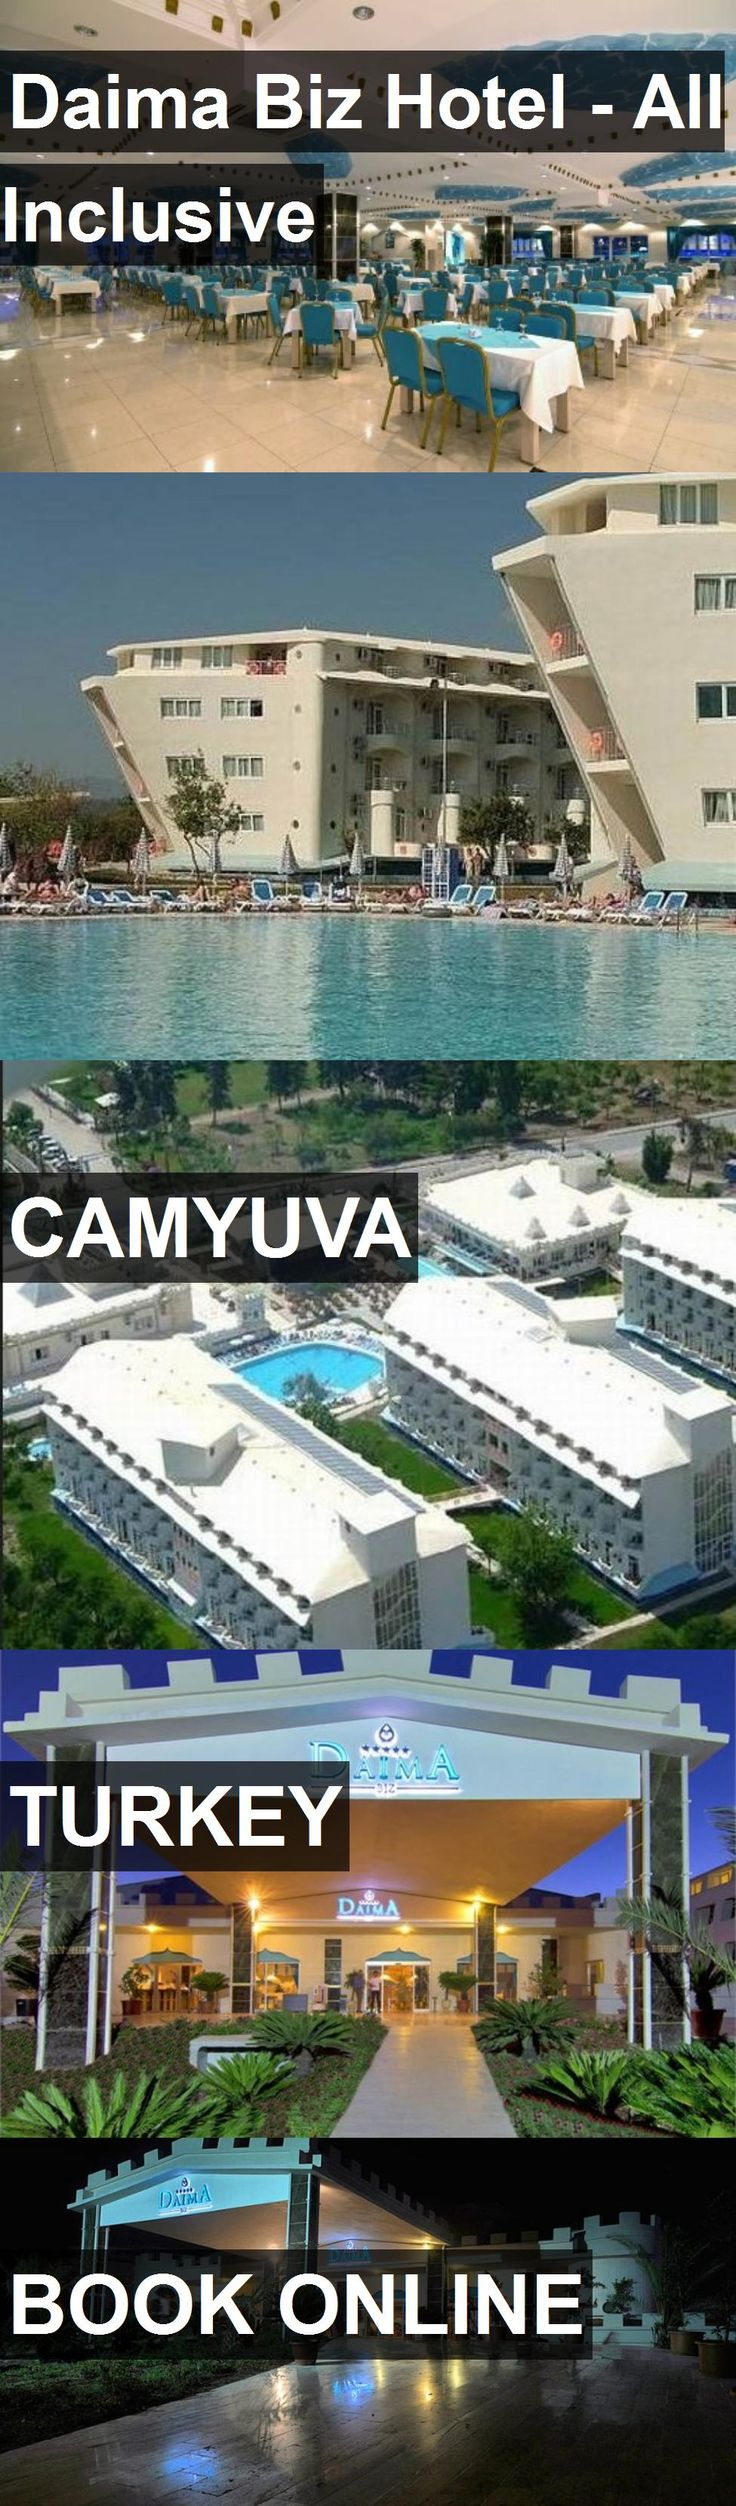 Hotel Daima Biz Hotel - All Inclusive in Camyuva, Turkey. For more information, photos, reviews and best prices please follow the link. #Turkey #Camyuva #DaimaBizHotel-AllInclusive #hotel #travel #vacation